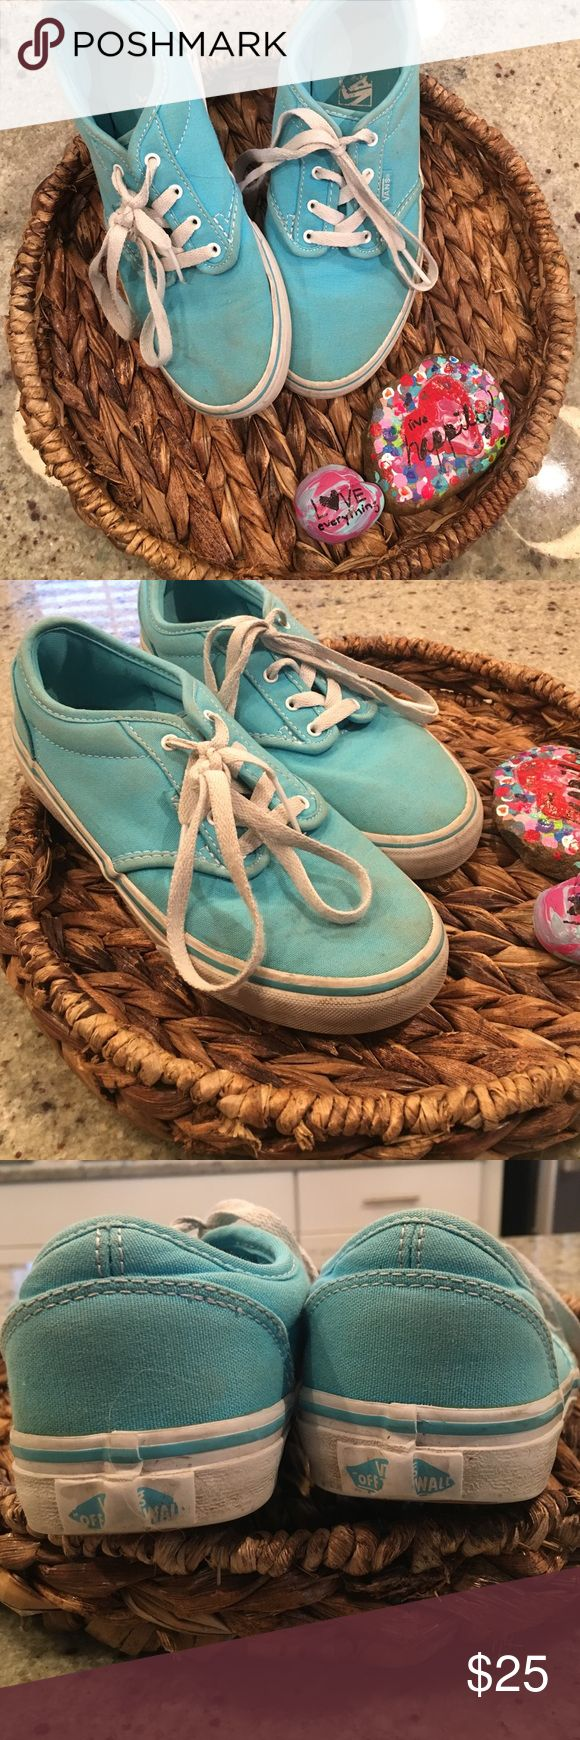 Girls Vans shoes Basic wear and tear but in great shape perfect condition on the soles! Vans Shoes Sneakers